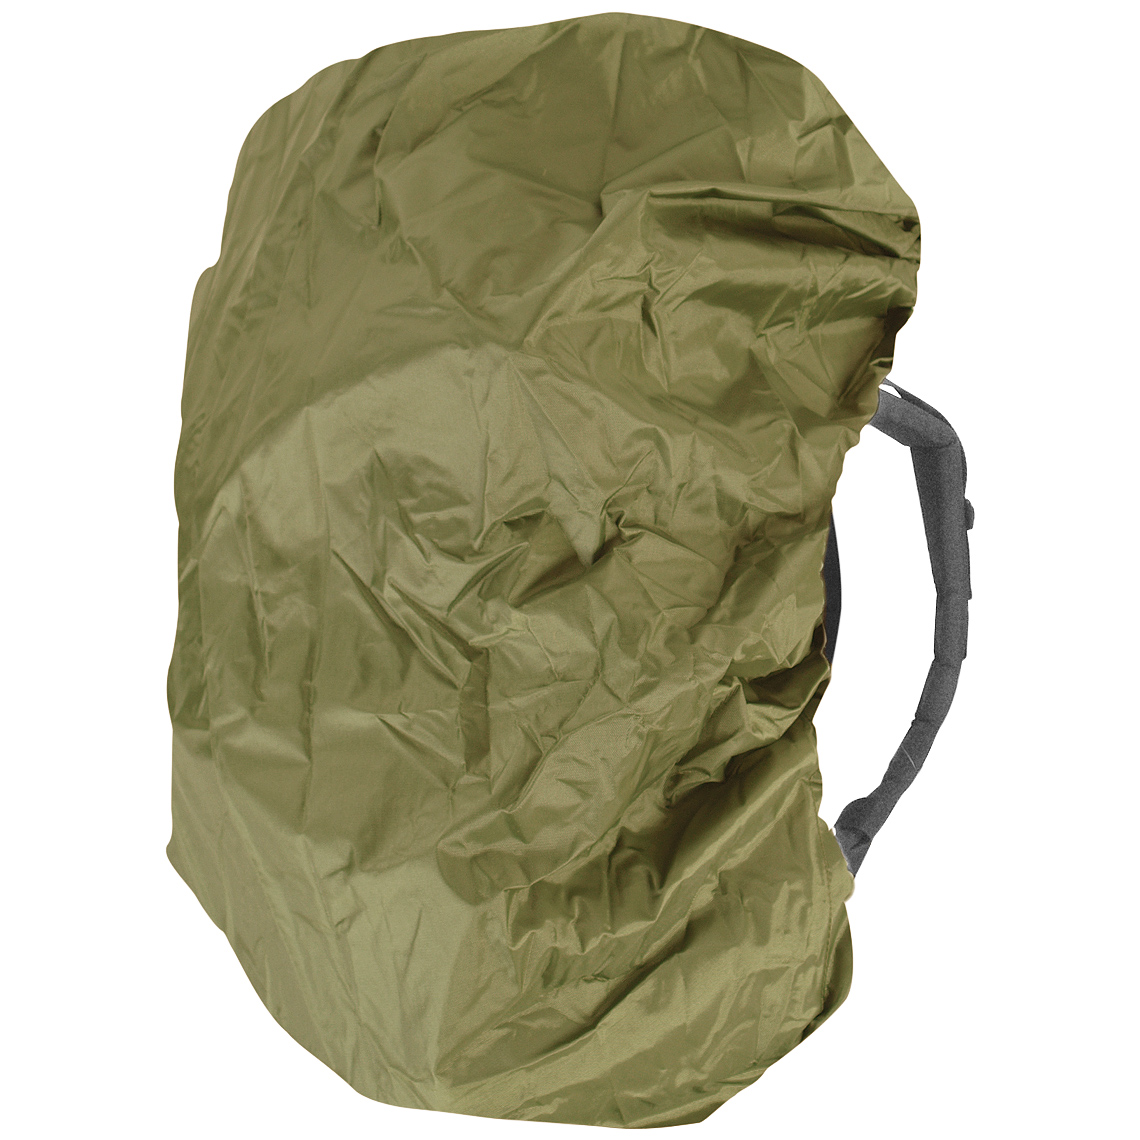 Mil-Tec BW Backpack Rain Cover Coyote | Accessories | Military 1st